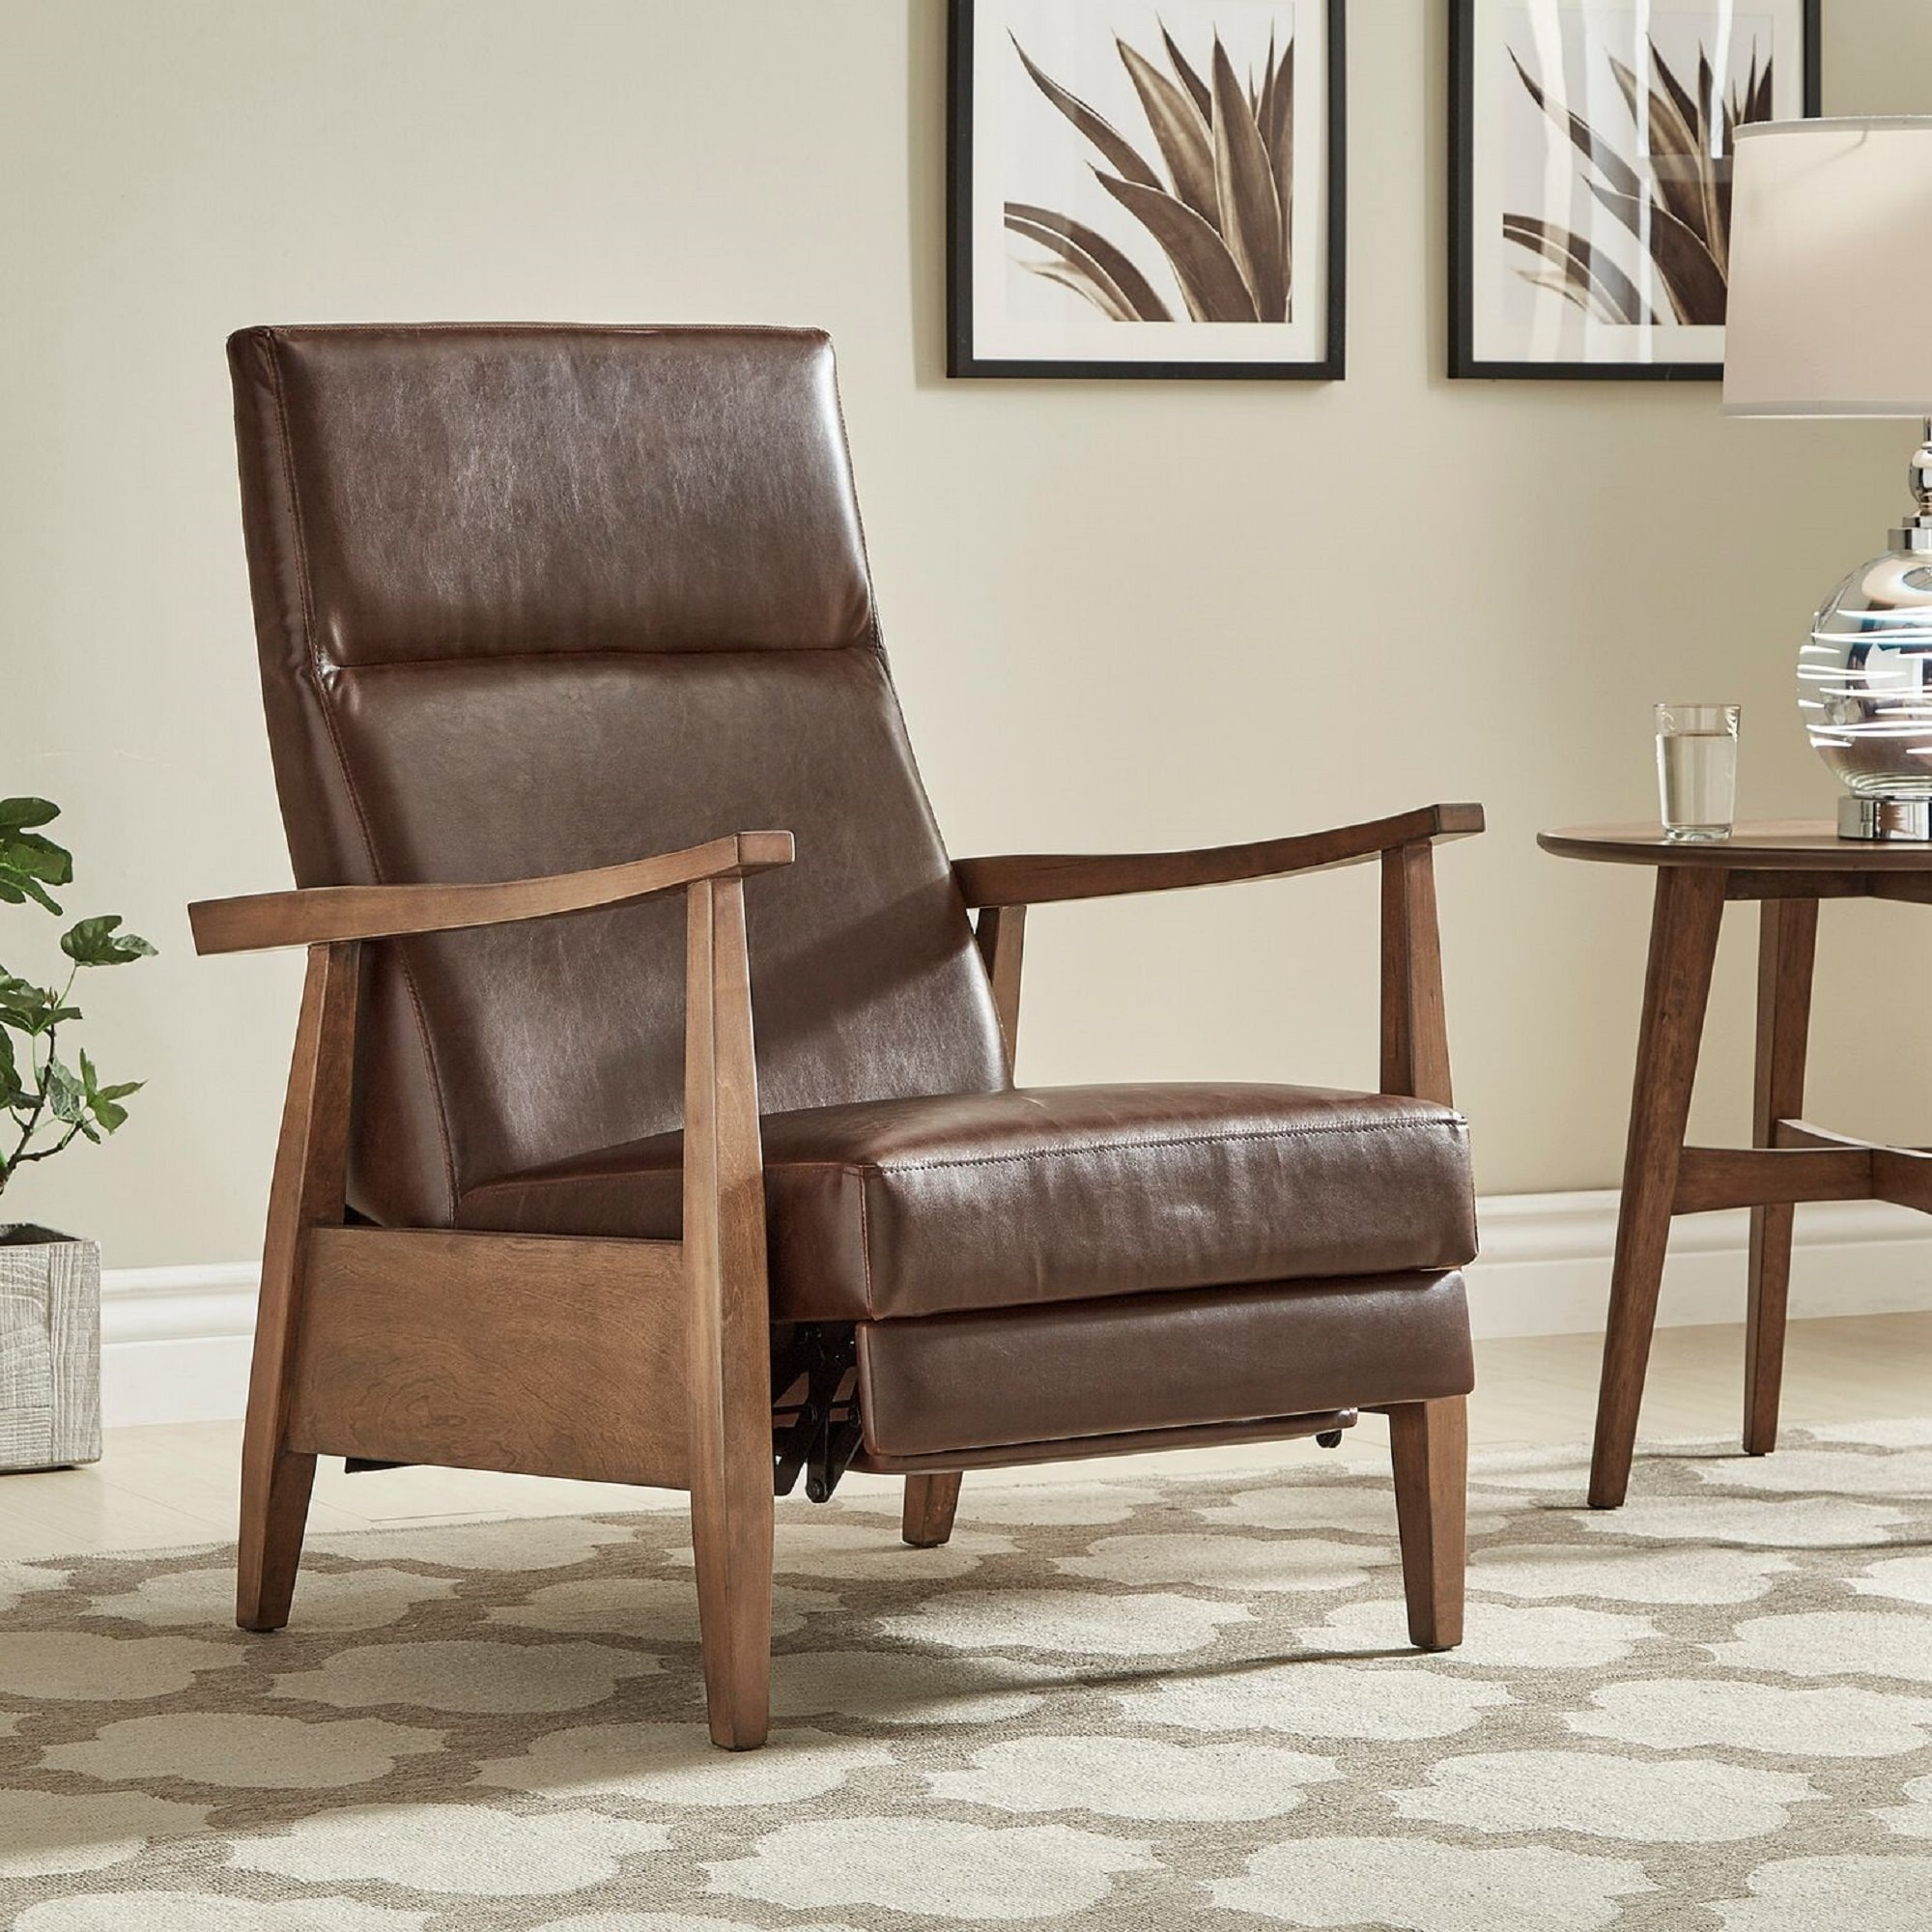 Brayden Mid Century Wood Arm Recliner By INSPIRE Q Modern   Free Shipping  Today   Overstock.com   23967838